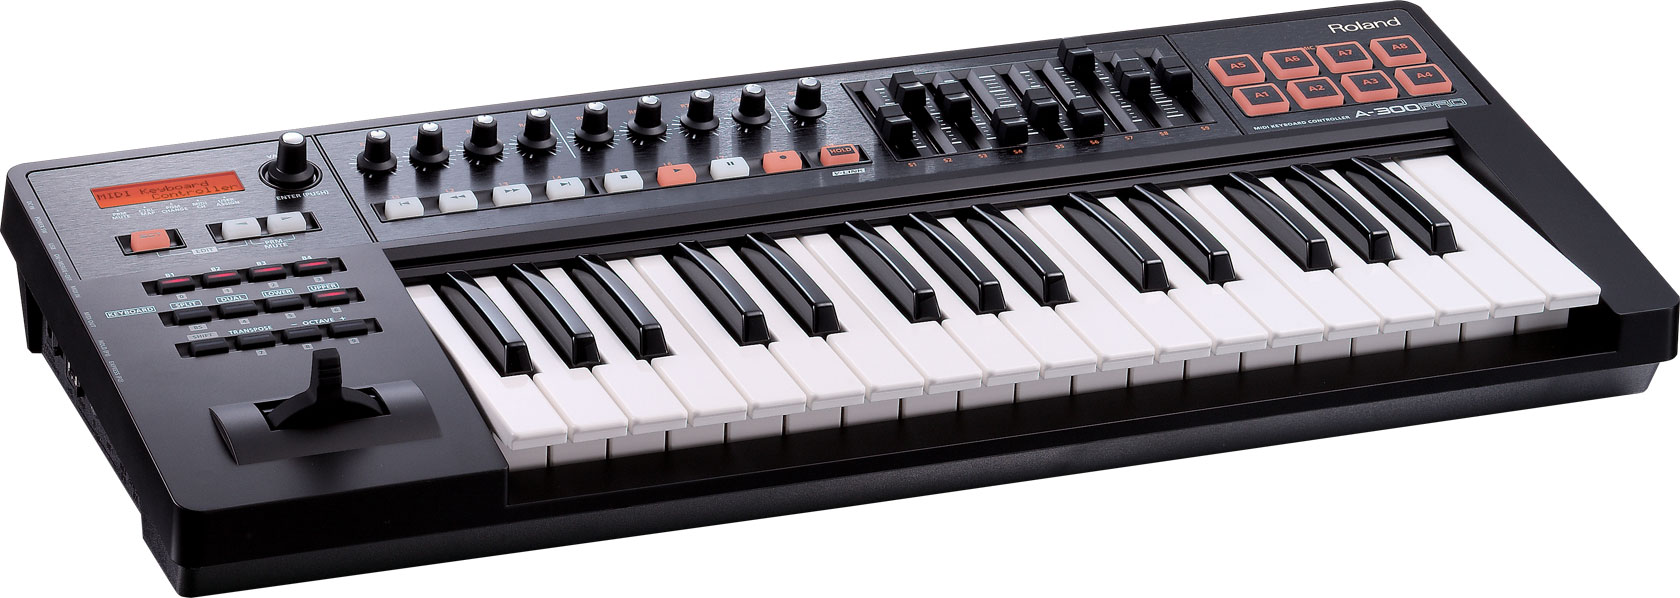 Roland 32 Key MIDI keyboard and controller